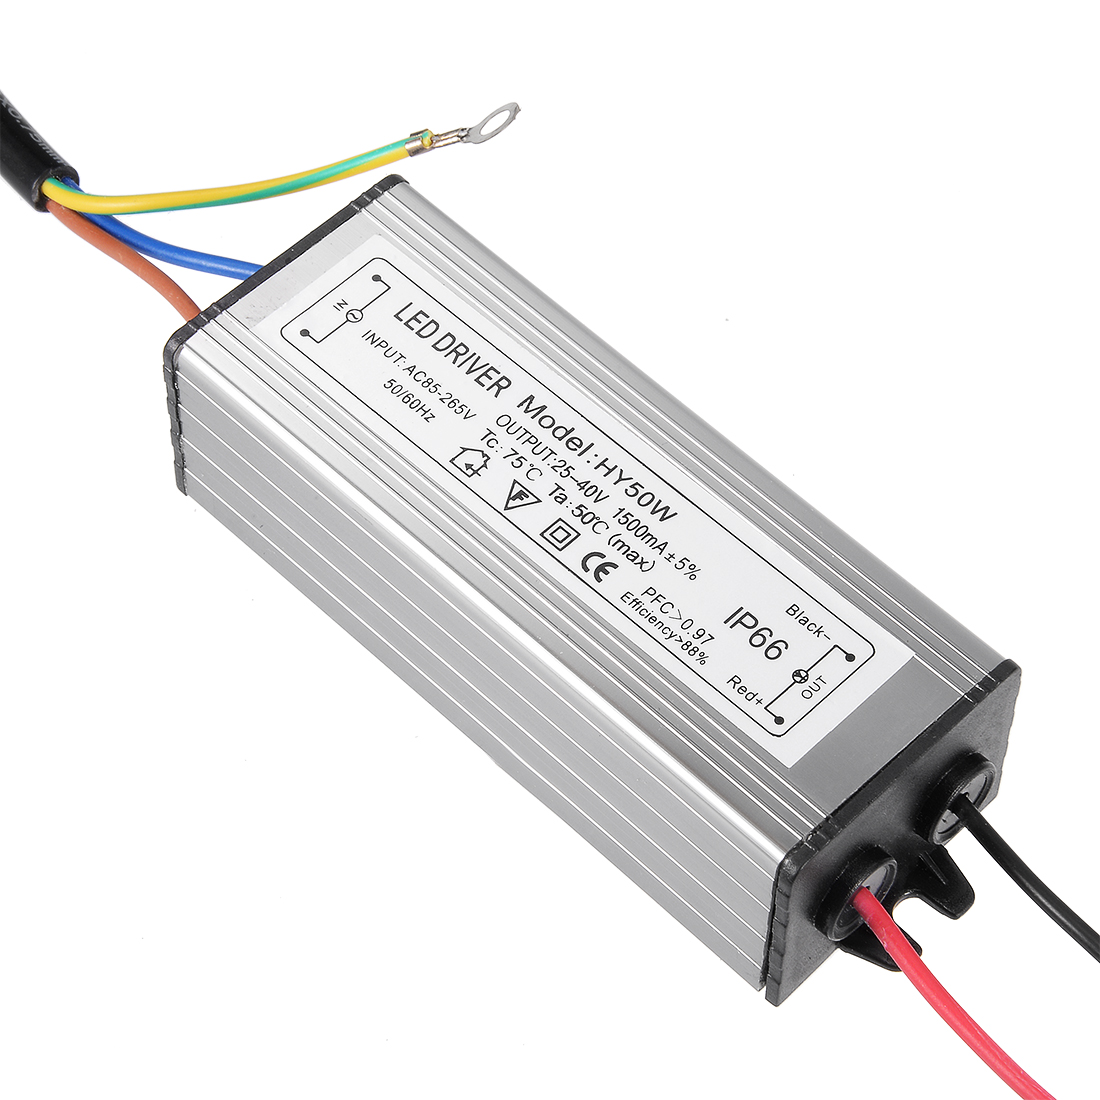 HY50W AC 85-265V Input DC 25-40V Output 50W Waterproof LED Power Supply Converter Driver